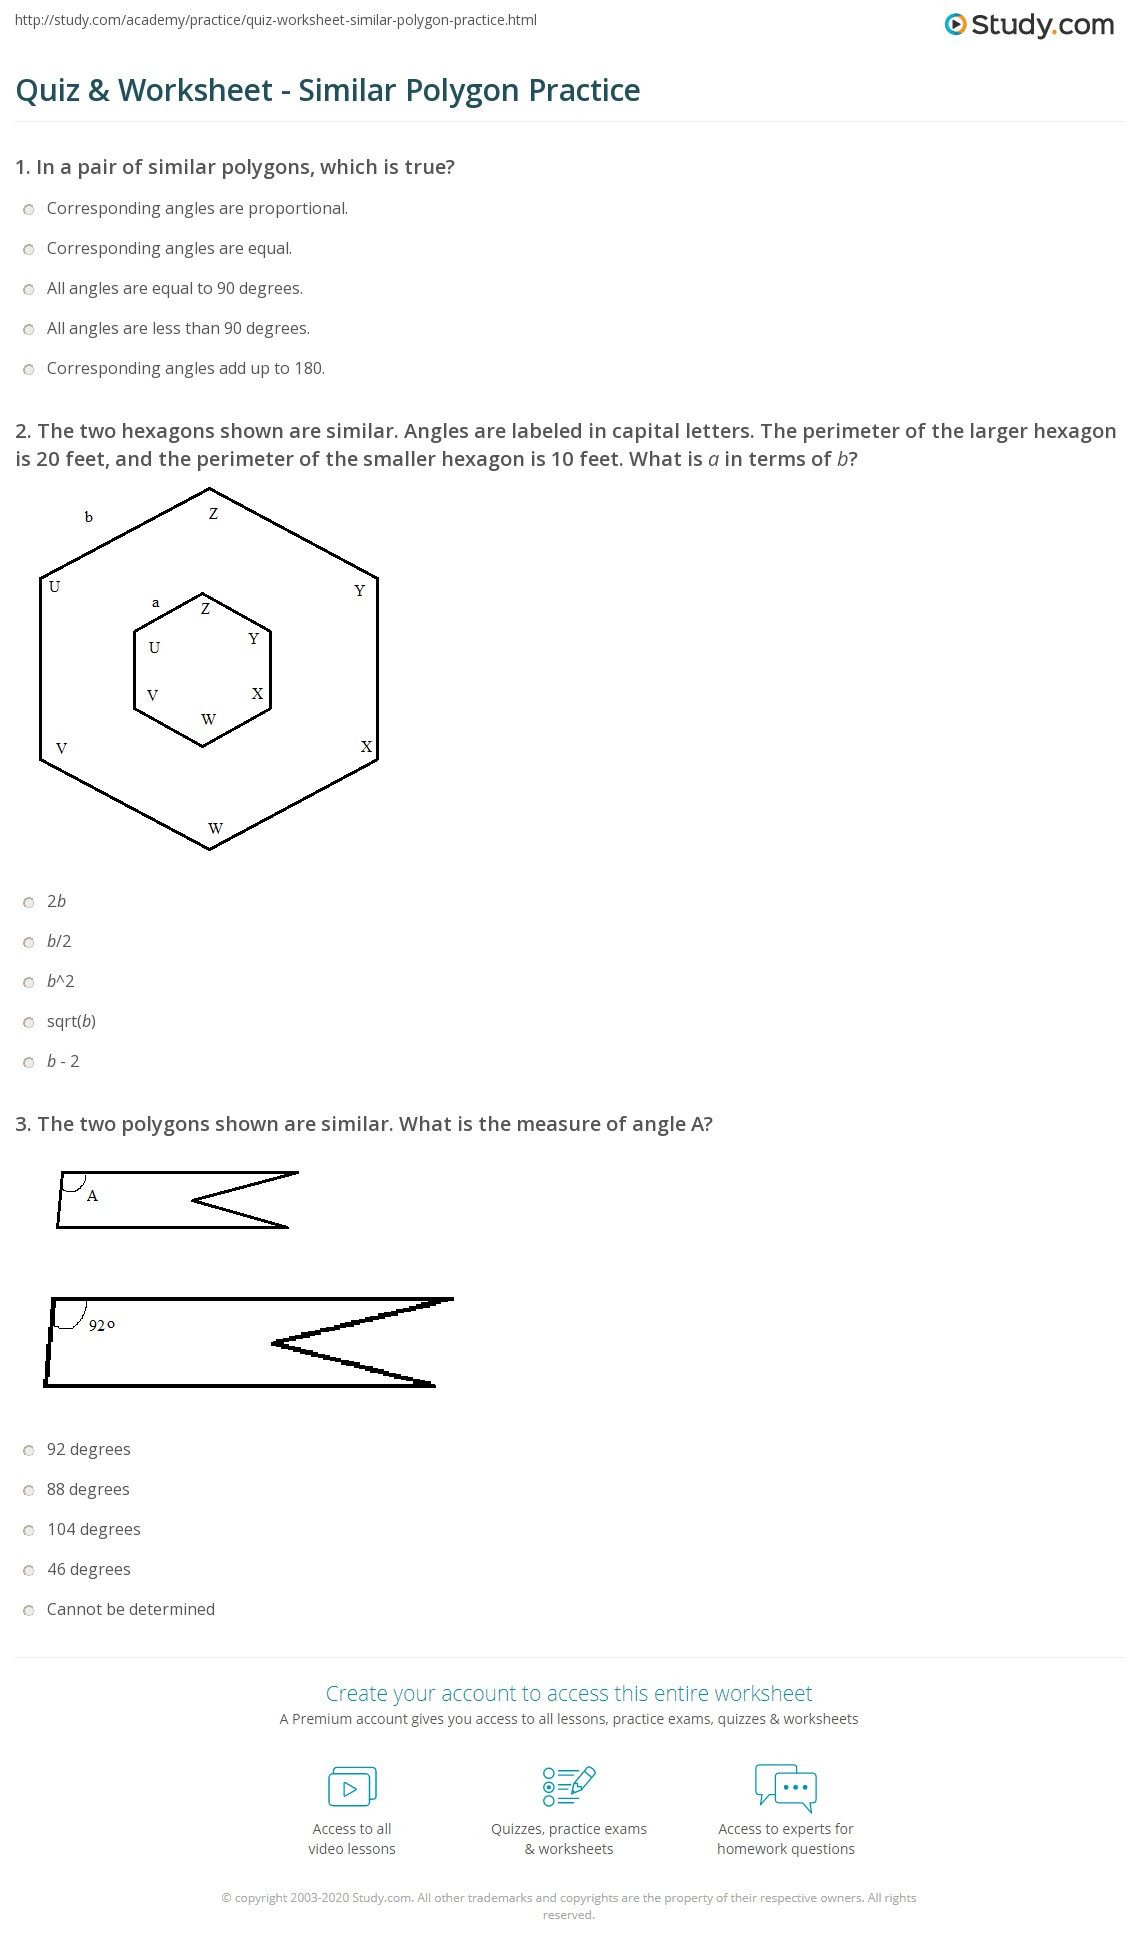 Polygon and Angles Worksheet Quiz & Worksheet Similar Polygon Practice